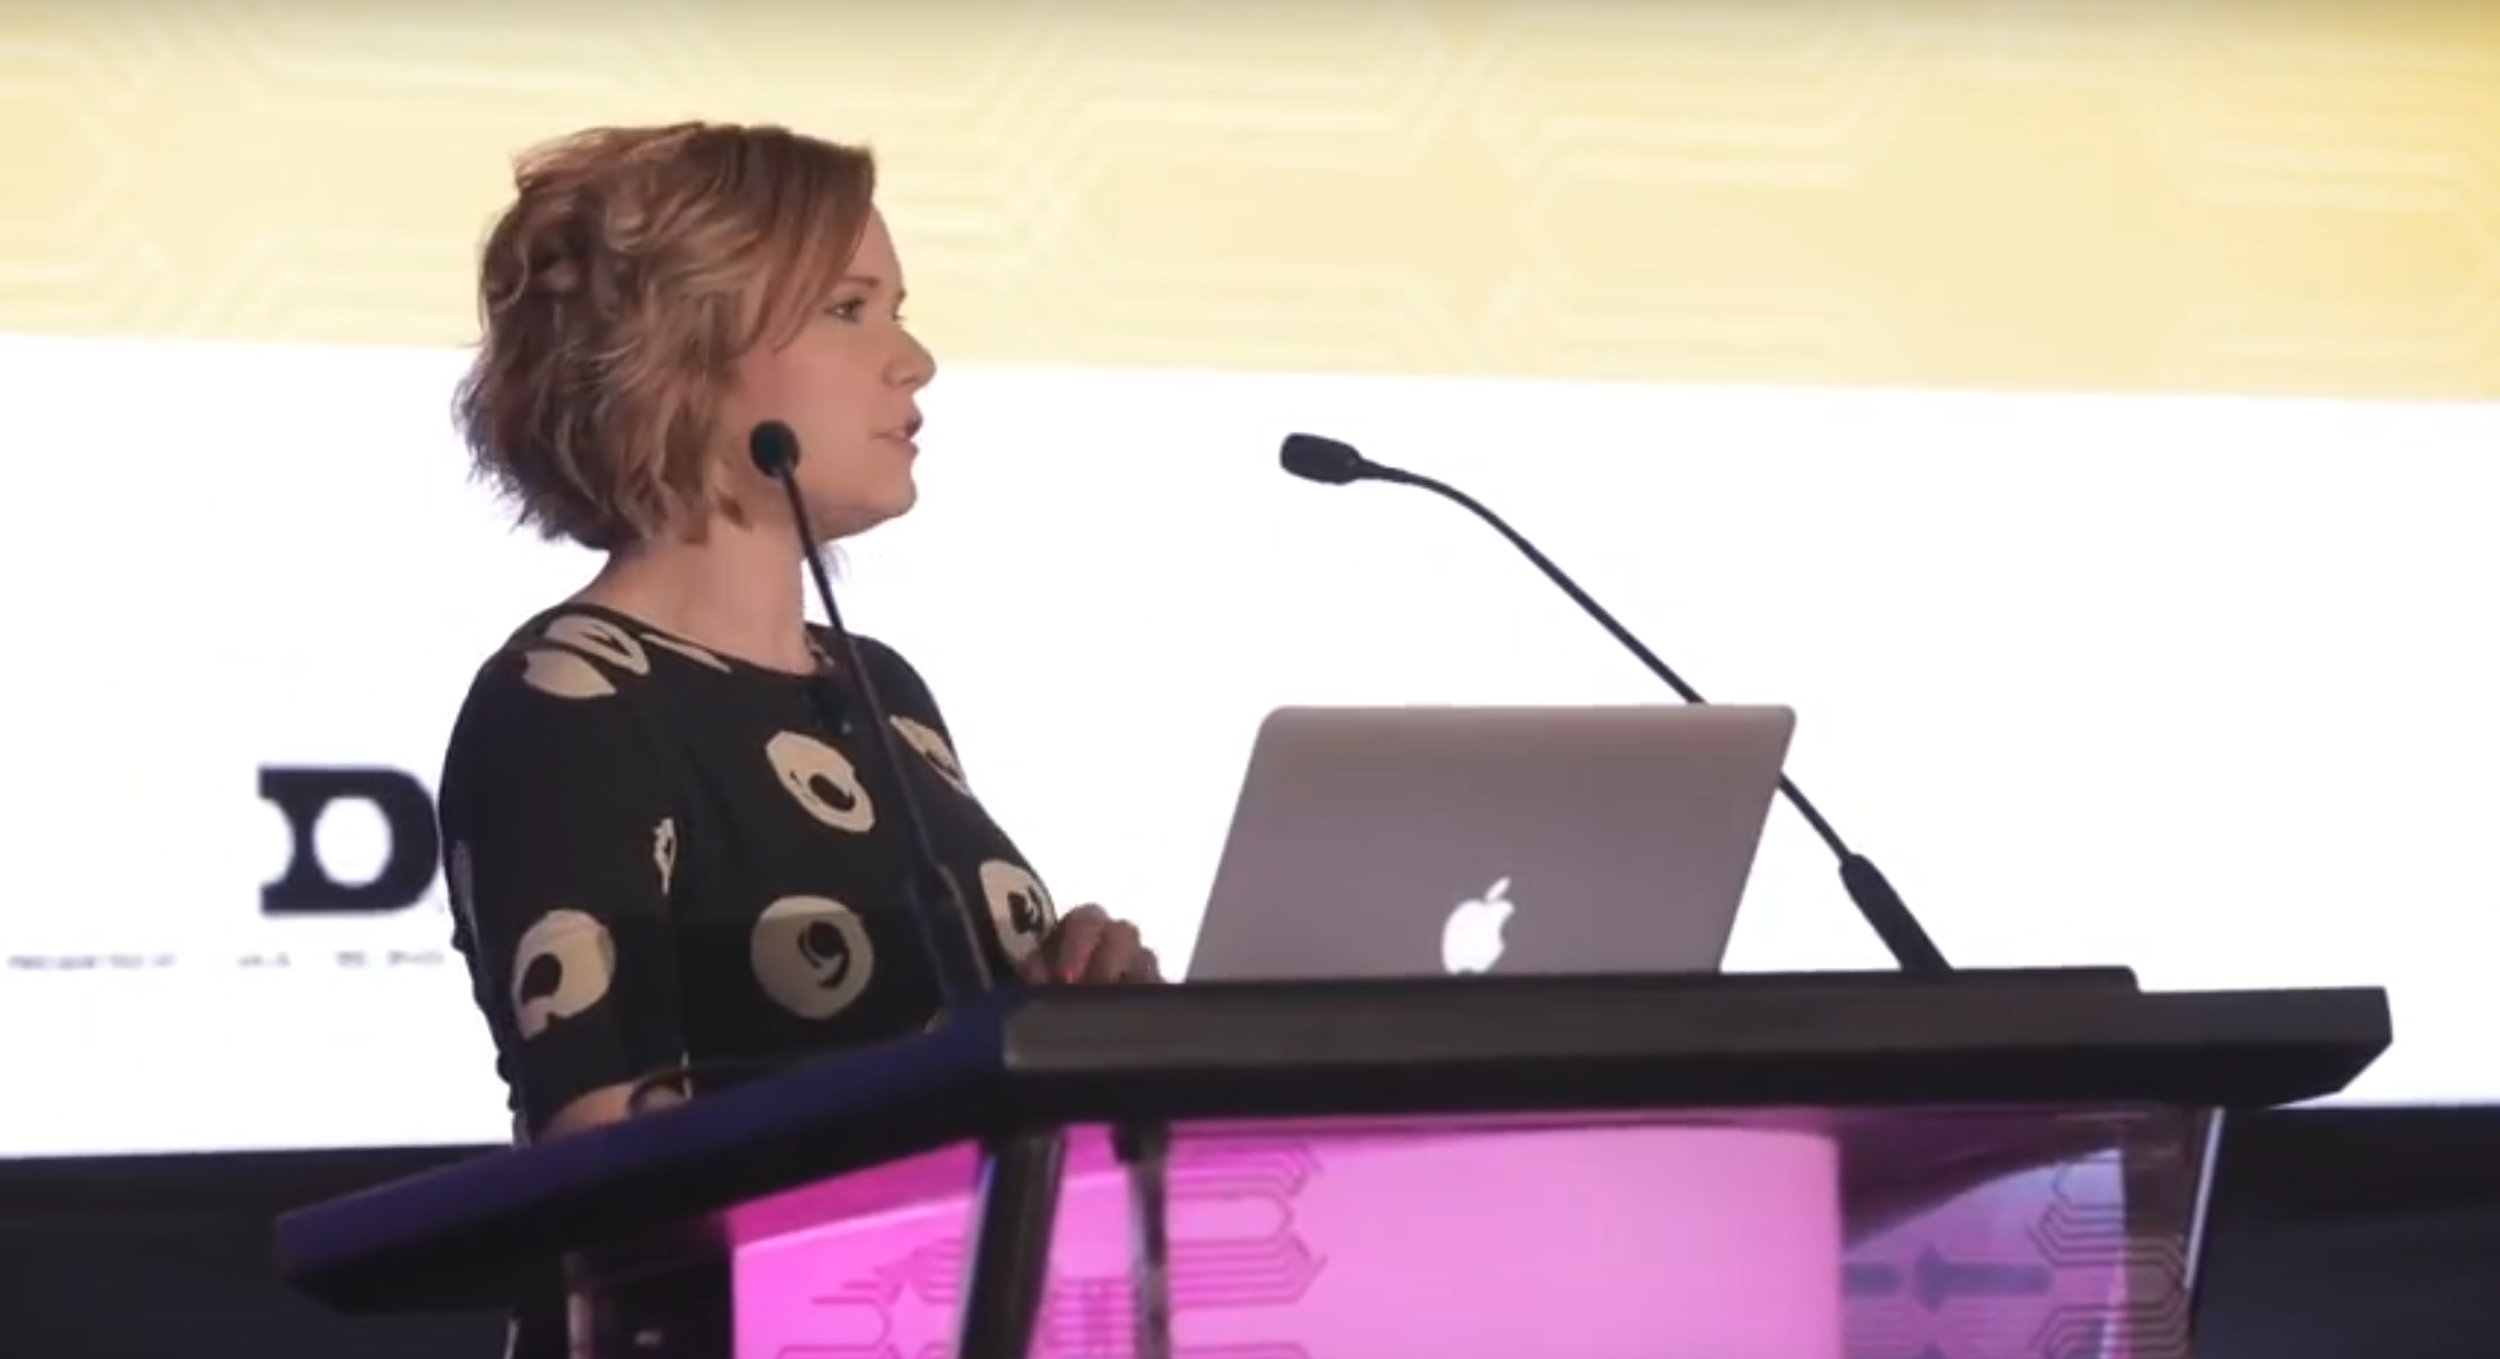 Hannah presenting at the 2017 SEGD Conference